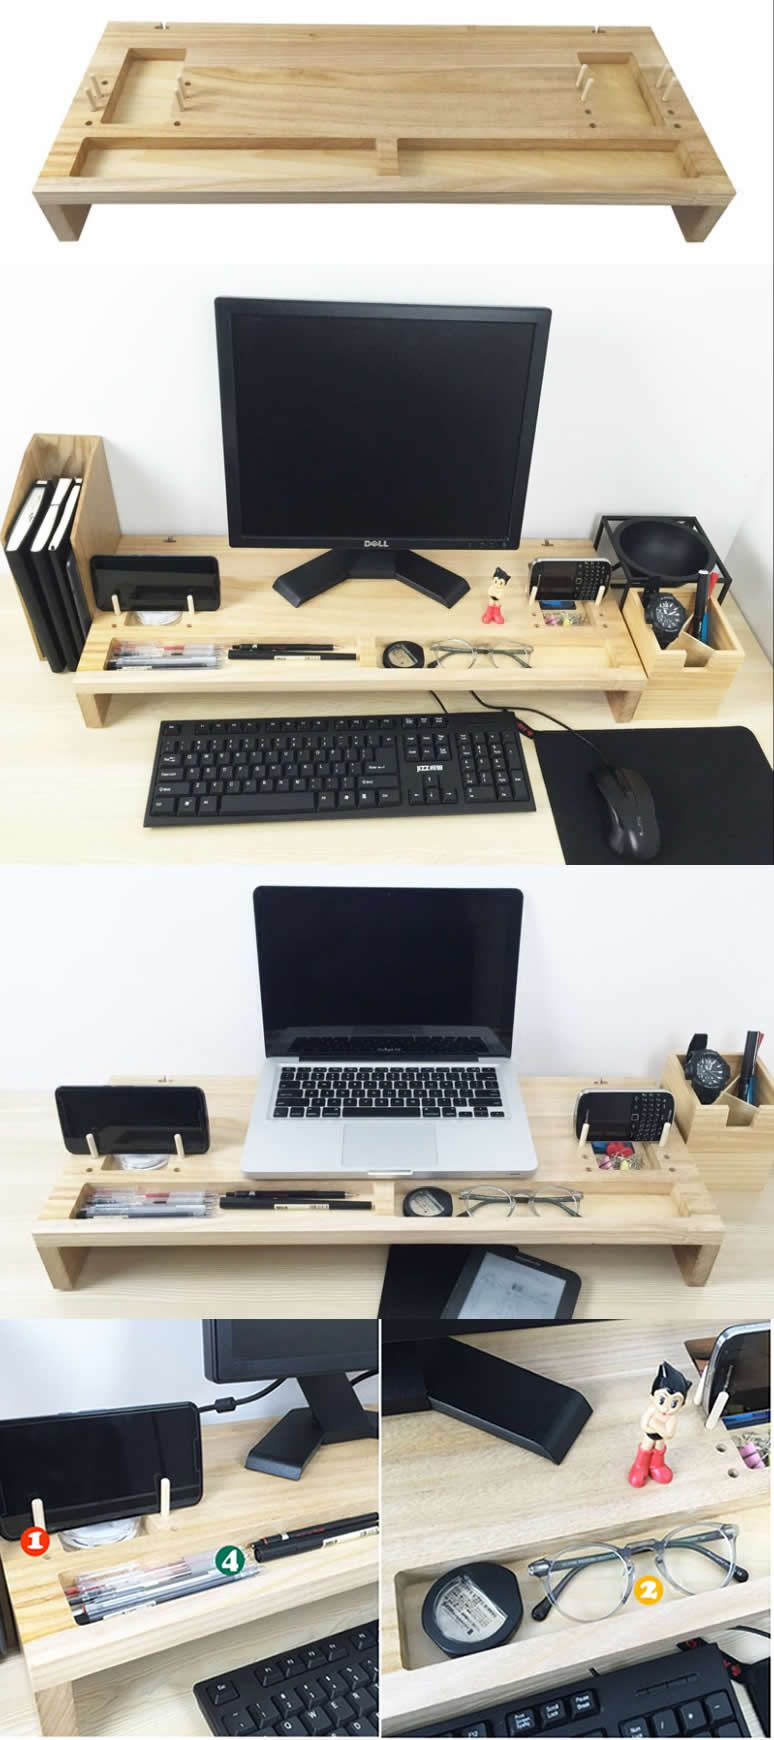 Wood Monitor Imac Stand Holder Laptop Notebook Apple Macbook Mobile Lap Desk Stationery Office Desk Desk Organization Diy Paper Holder Desk Monitor Stand Diy